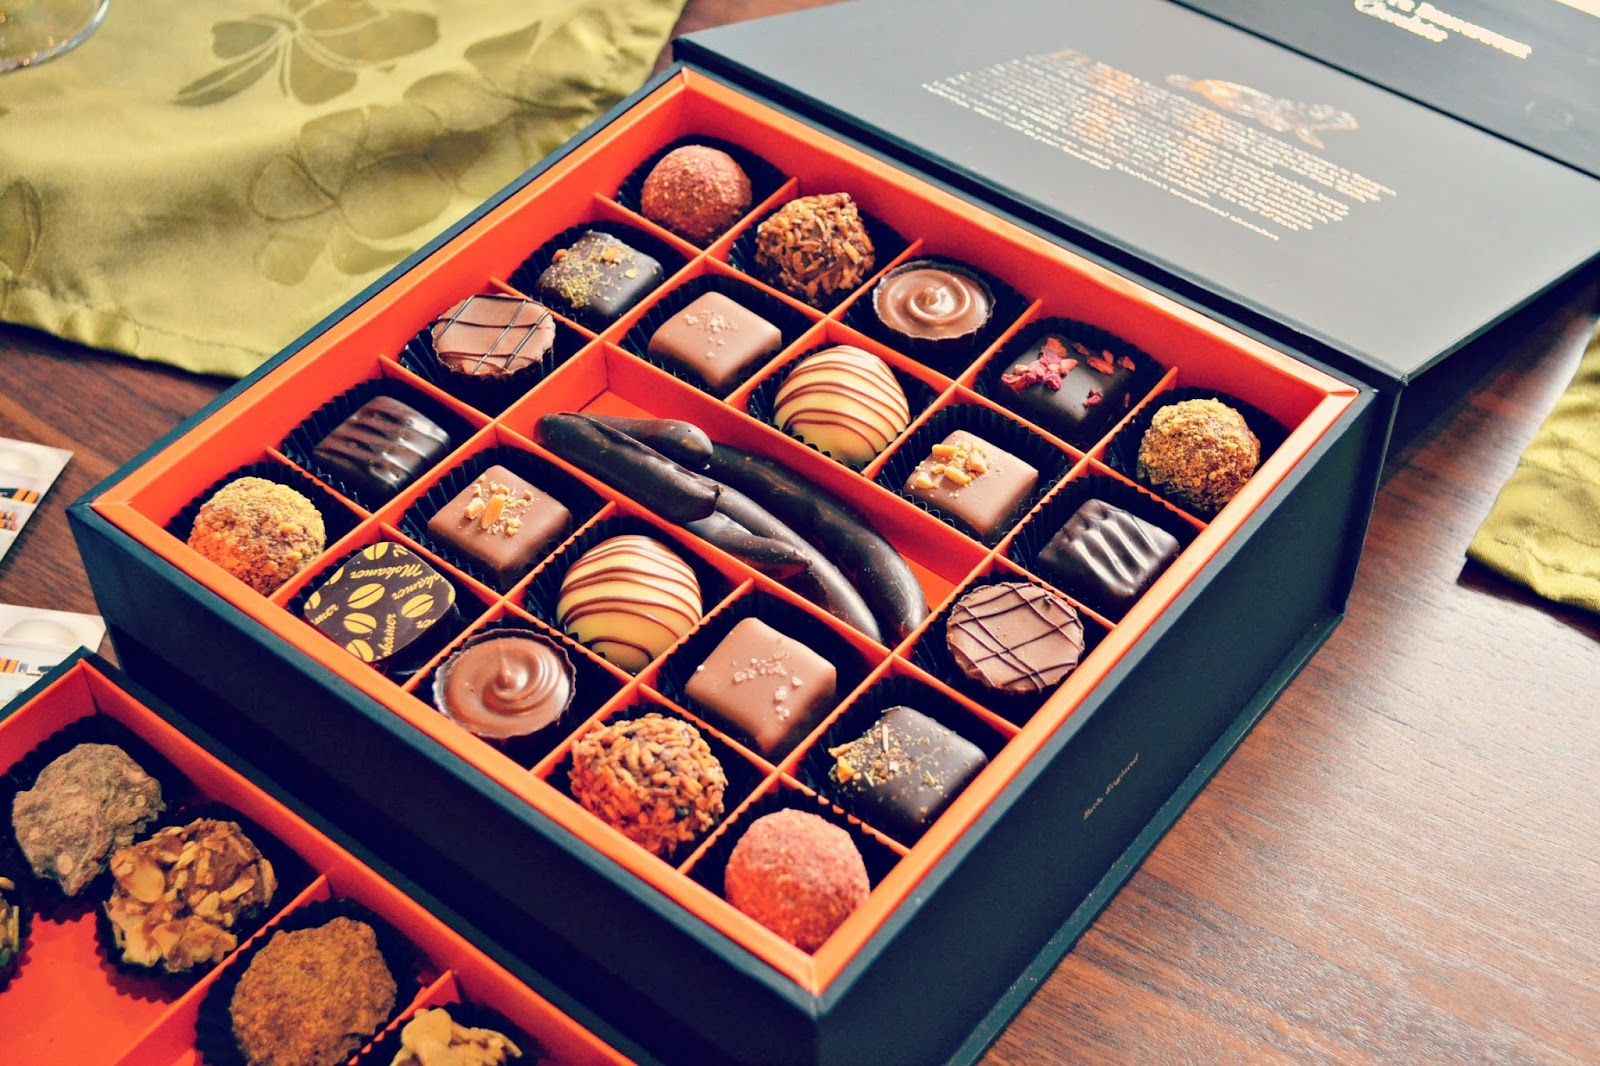 Charlotte Brunswick Chocolate box at Harington House, Bath, UK